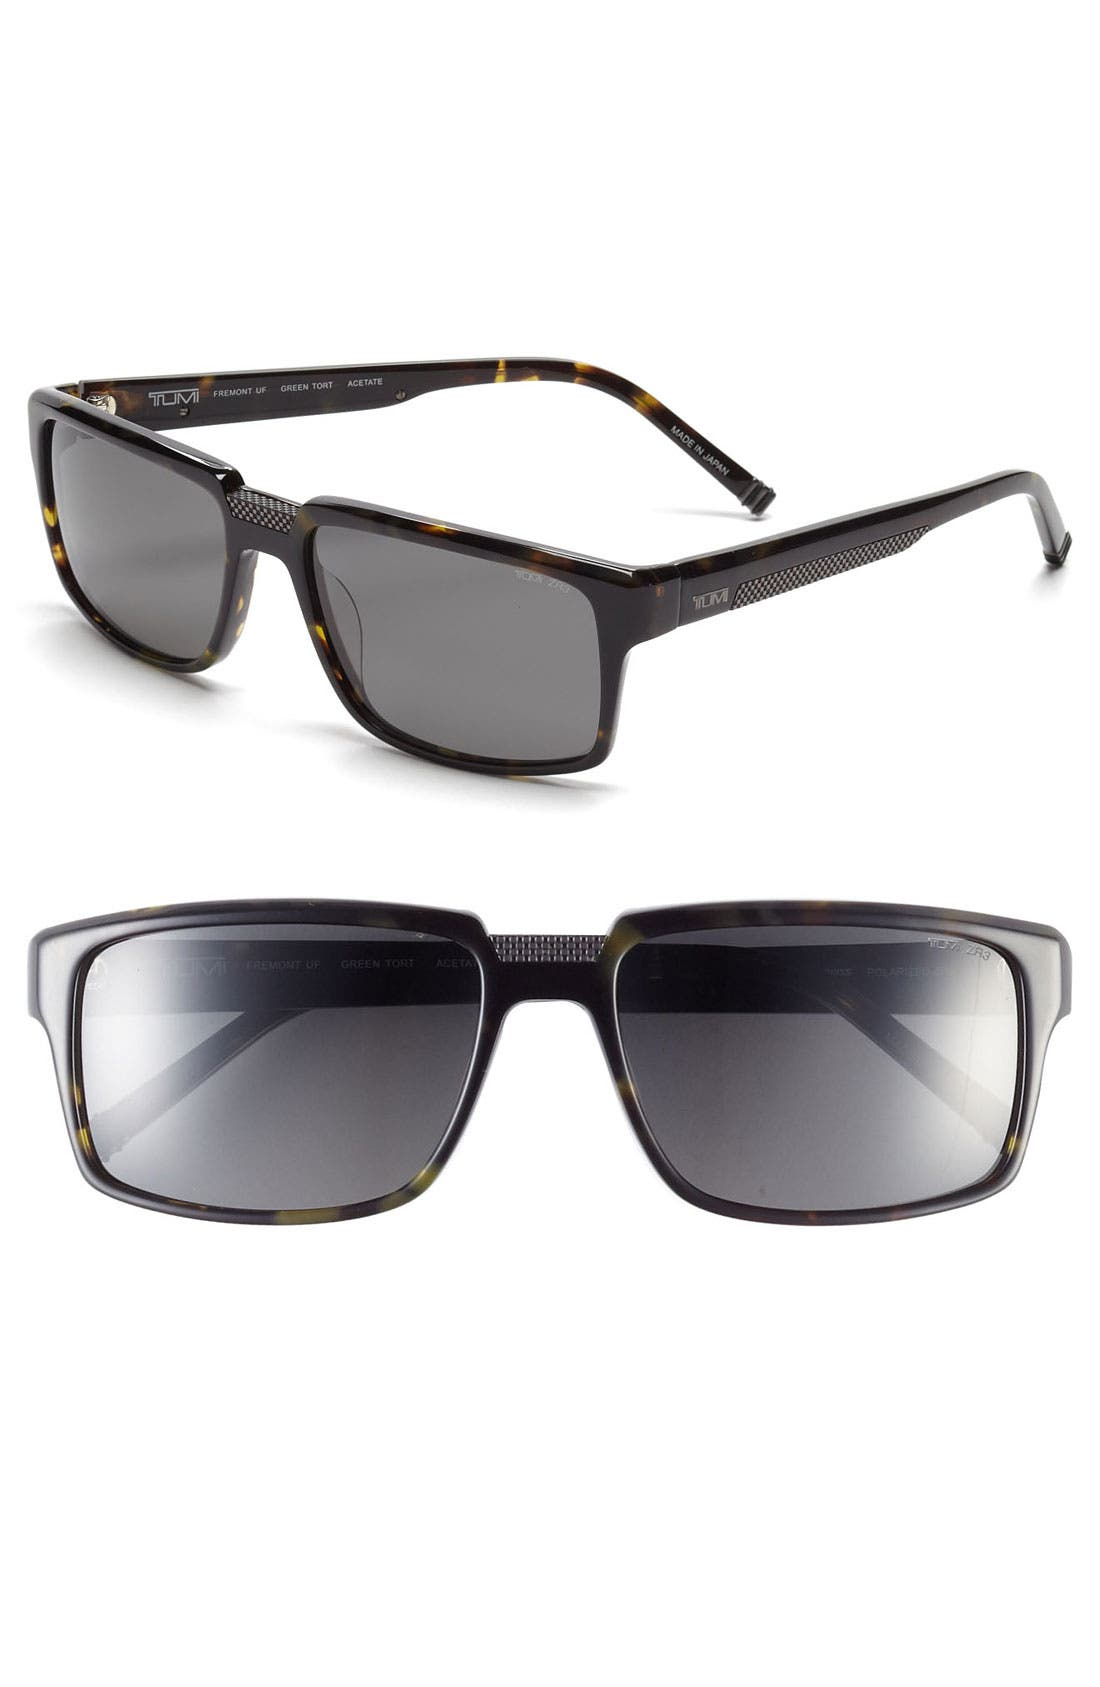 Main Image - Tumi 'Fremont' 58mm Polarized Sunglasses